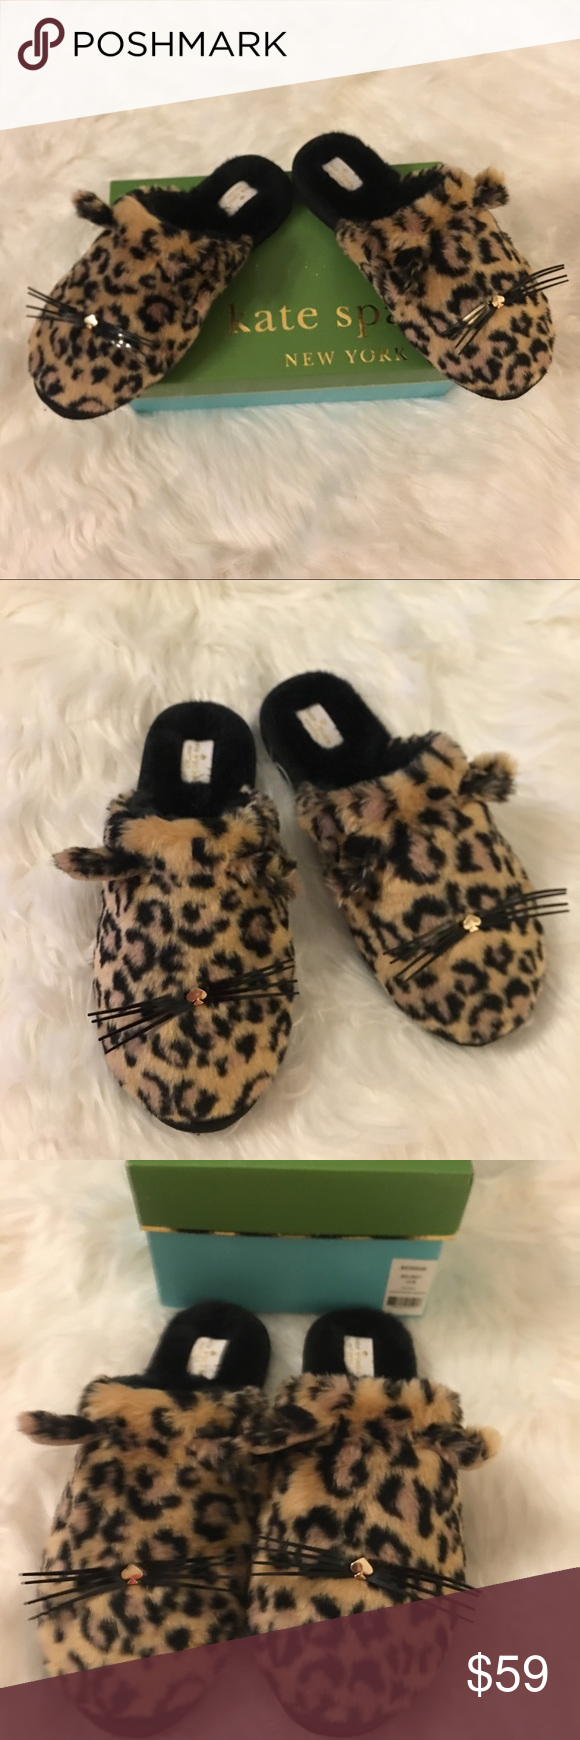 e4c5a2c7746b NWBOX Kate Spade Belindy Cat Faux Fur Slippers 10 New With Tags and Box -  Kate